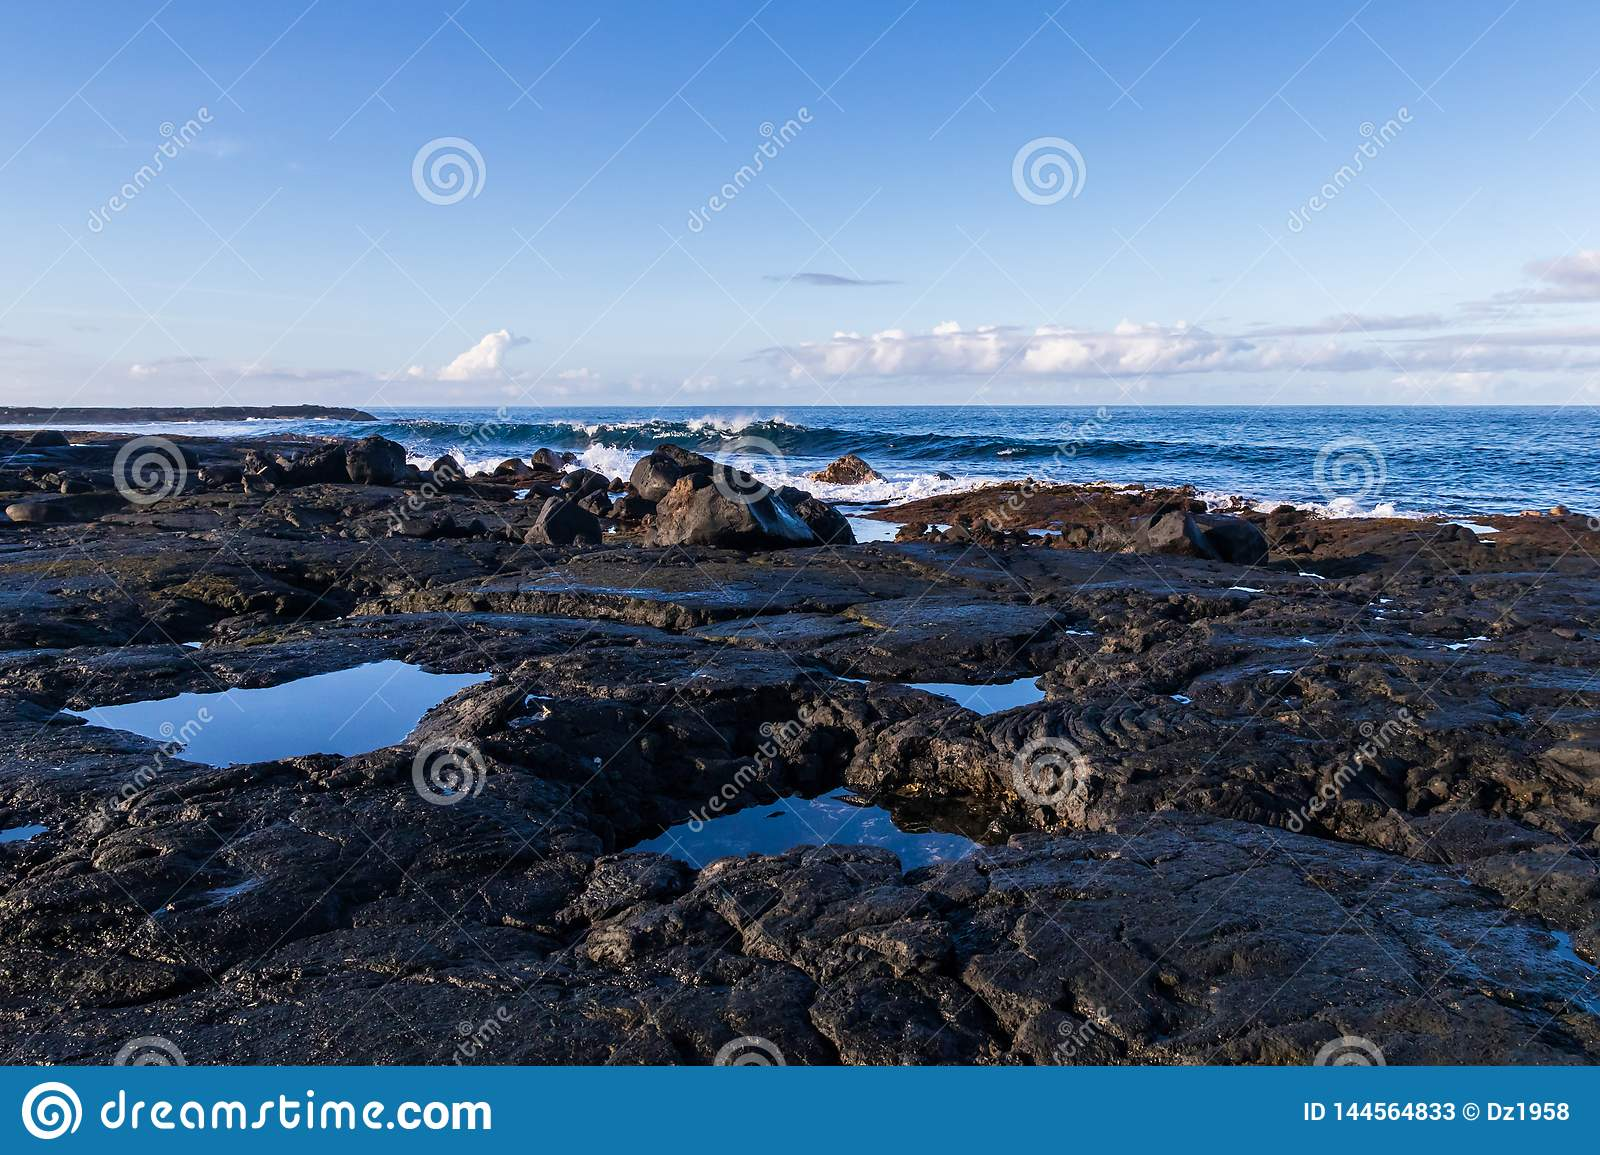 Rocky volcanic shoreline in Hawaii. Low tide; pools of water in rock cavities. Waves, ocean blue sky and clouds in background.